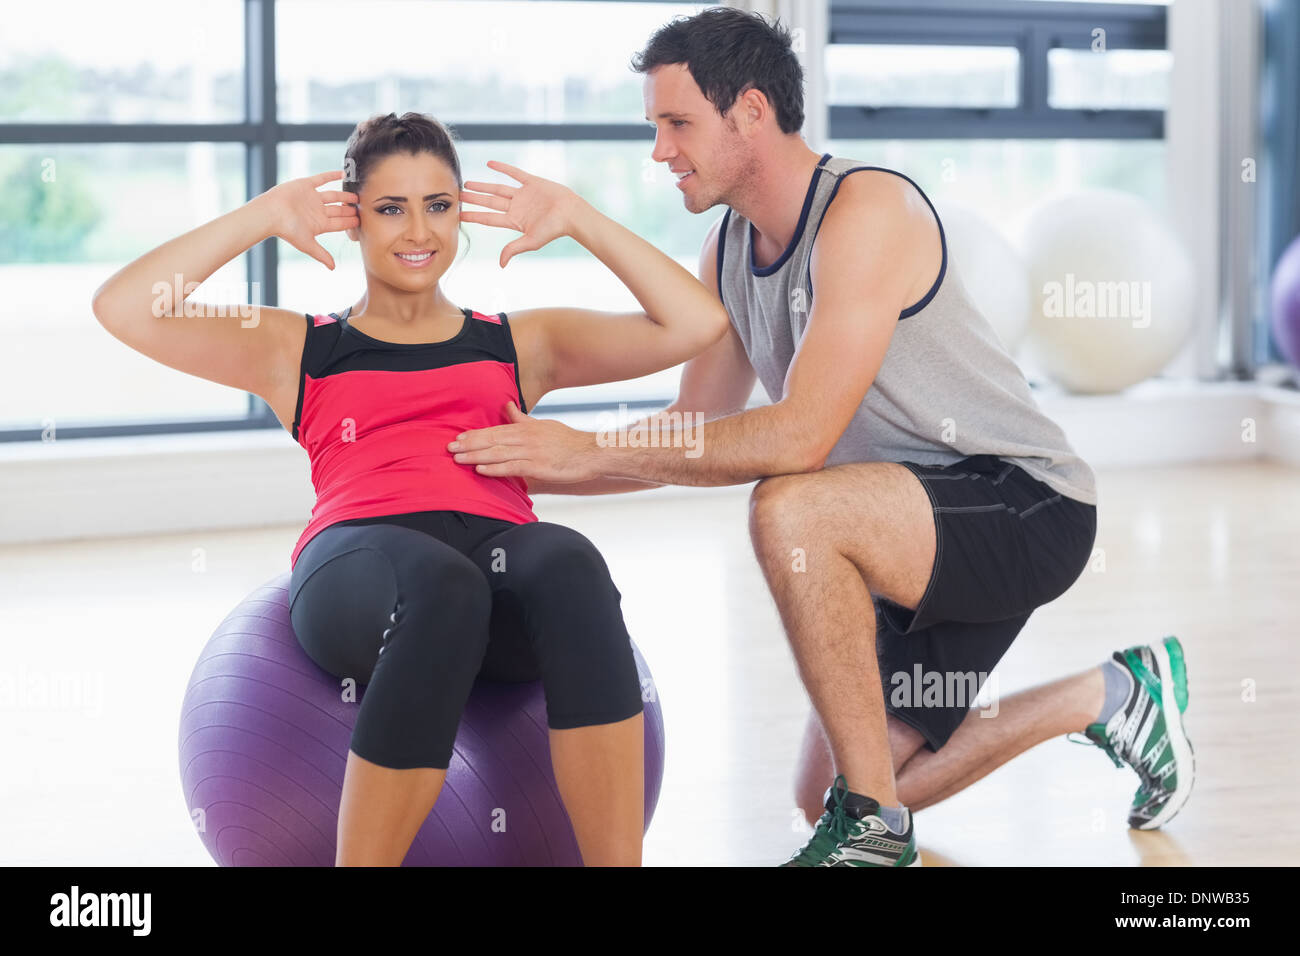 Trainer helping woman do abdominal crunches  on fitness ball - Stock Image